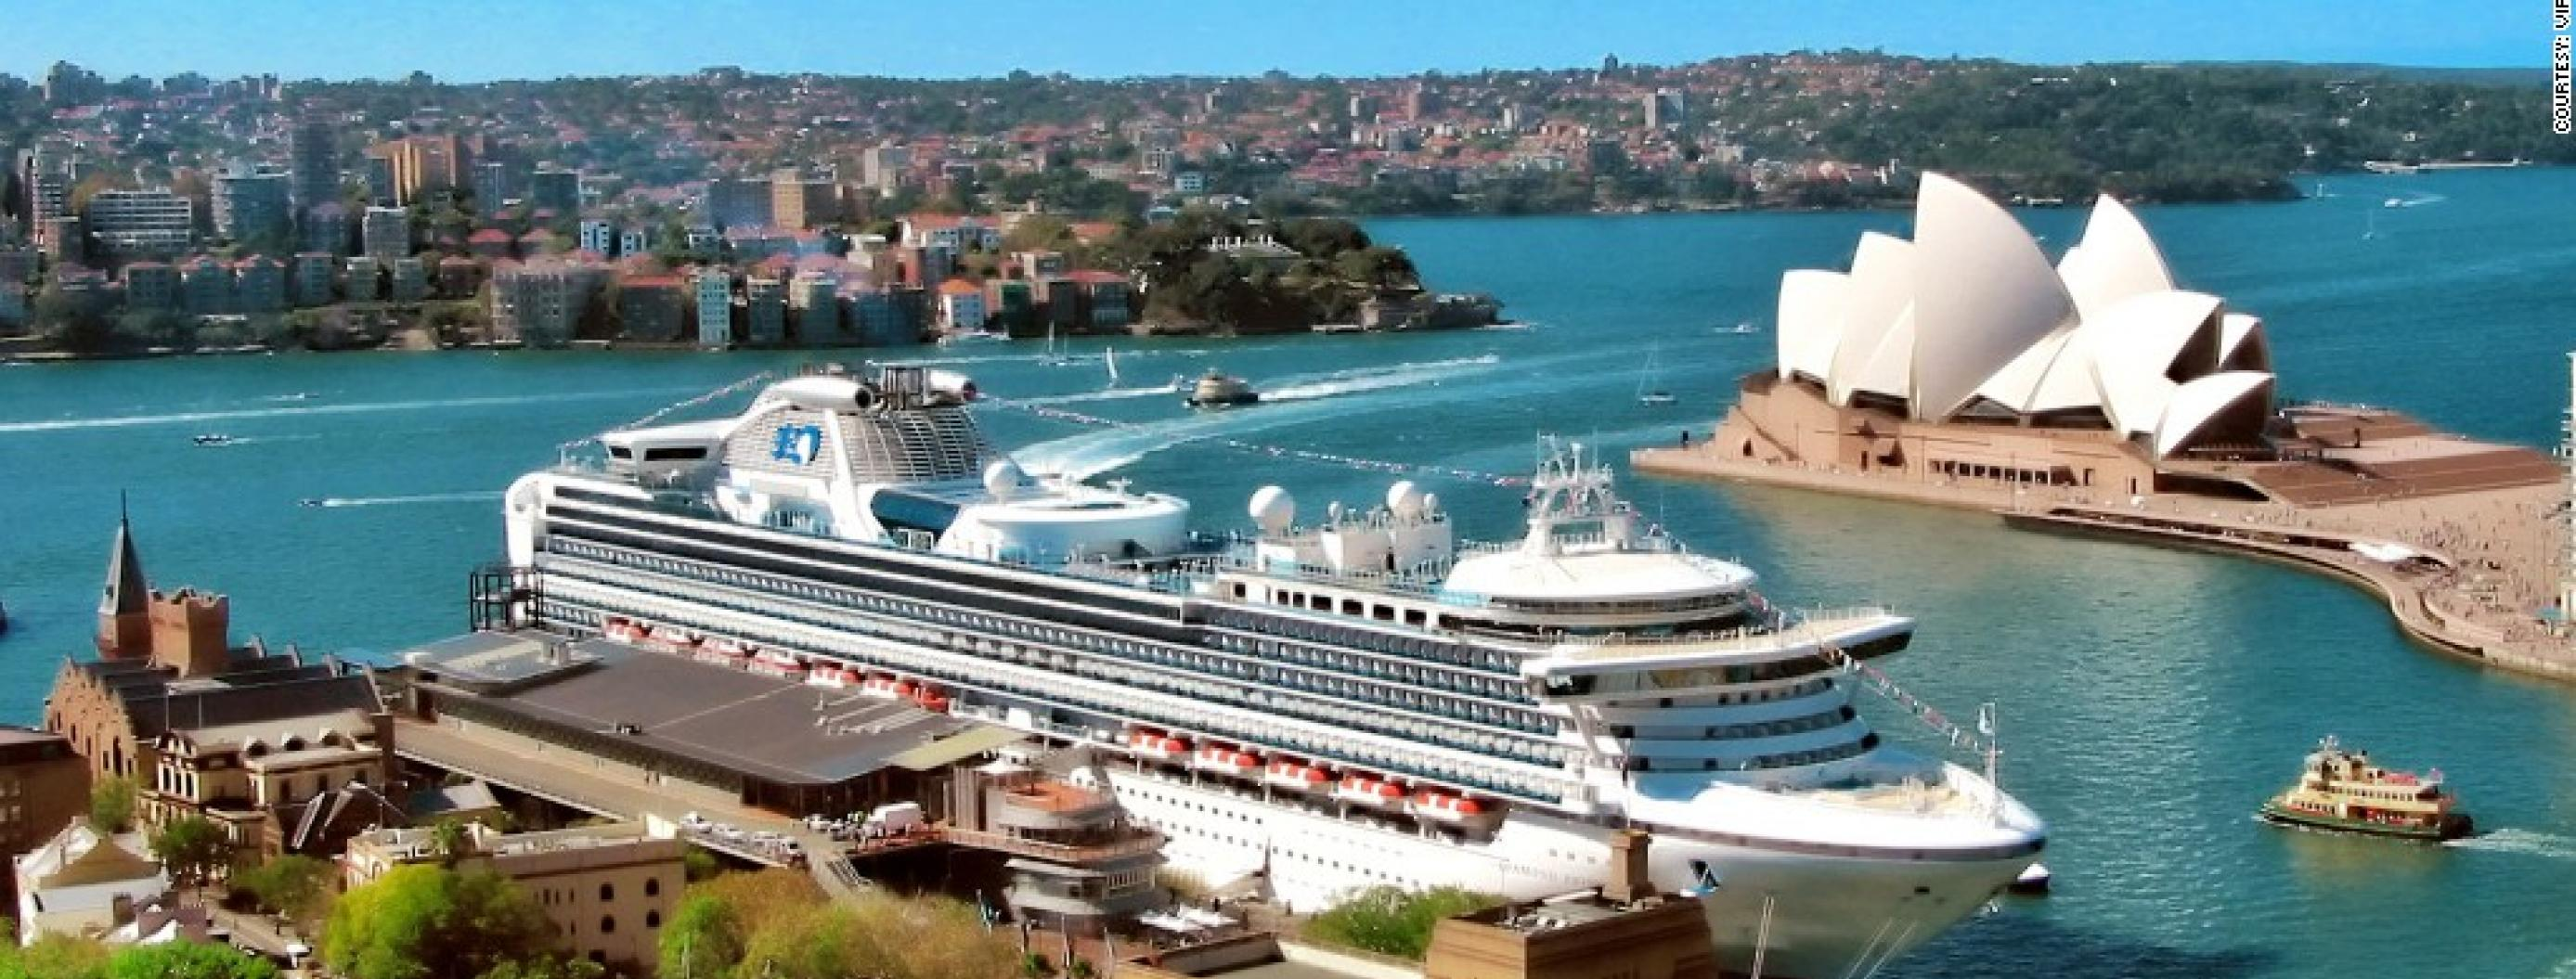 Top 10 Cruises of a Lifetime